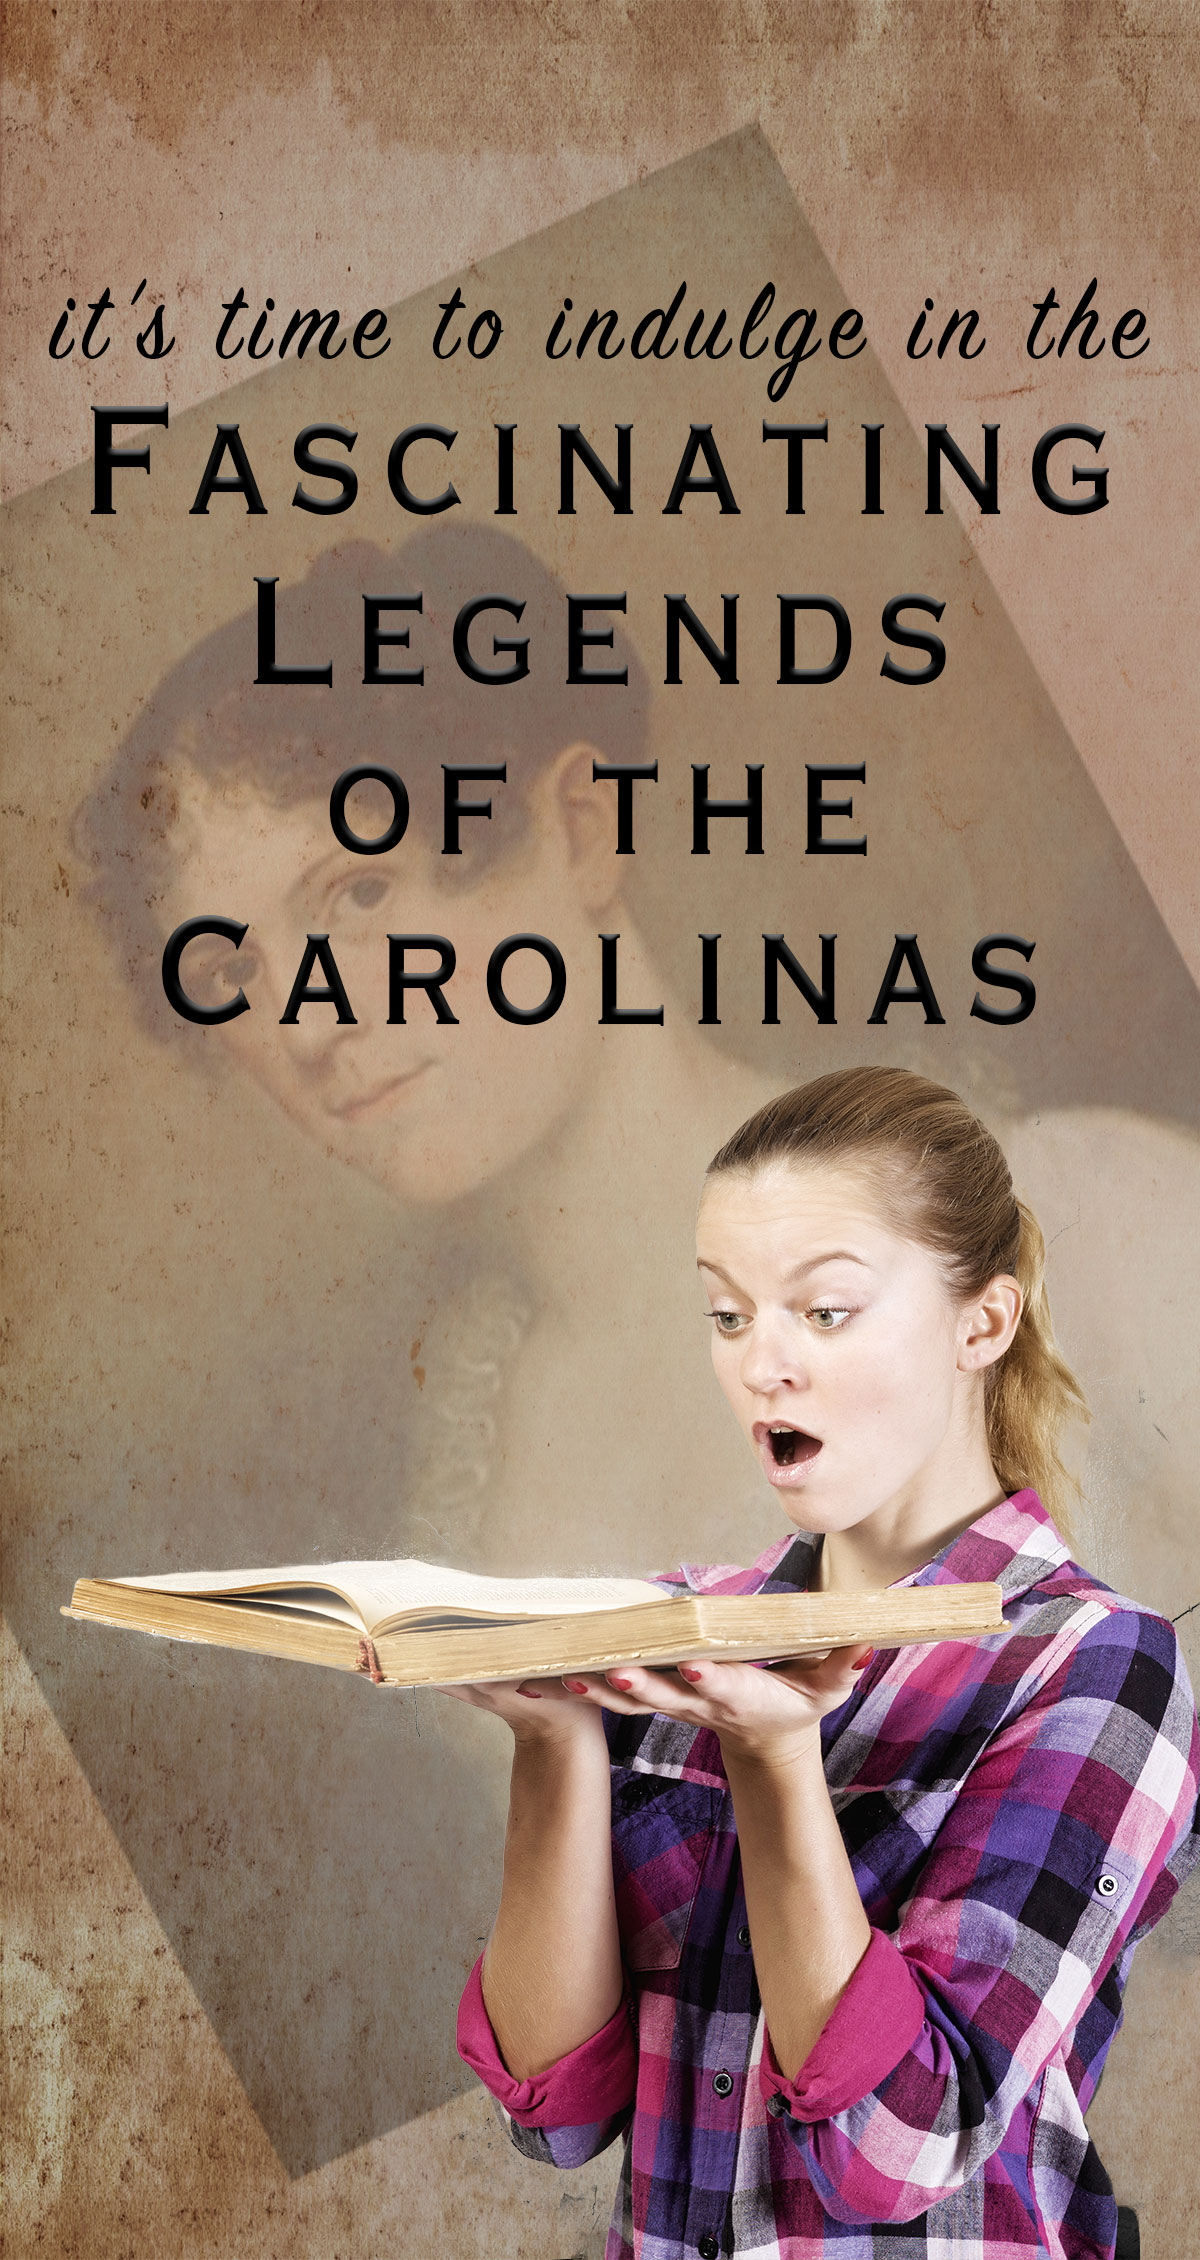 It's Time to Indulge in the Fascinating Legends of the Carolinas Pin